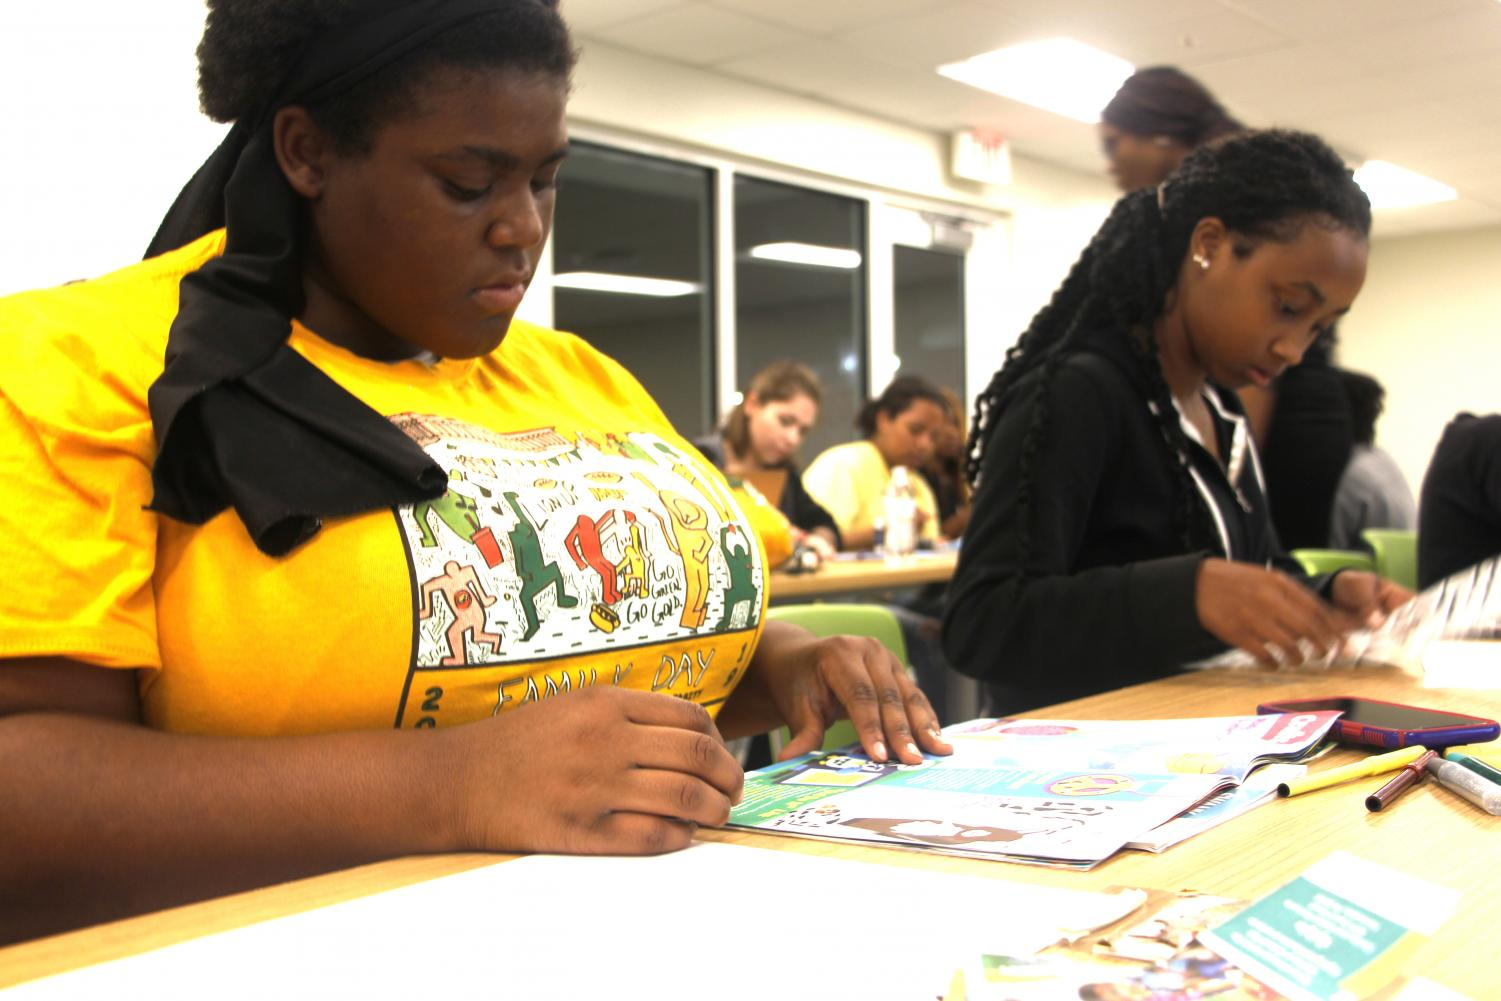 """LeShe' Flood and Mia Franklin, freshman nursing majors, participated in the Pre-Nursing Society's """"Vision Board Party,"""" which was the club's first event outside of their meetings. The club provides a means for students who wish to pursue a career in nursing to have a source of motivation and support."""